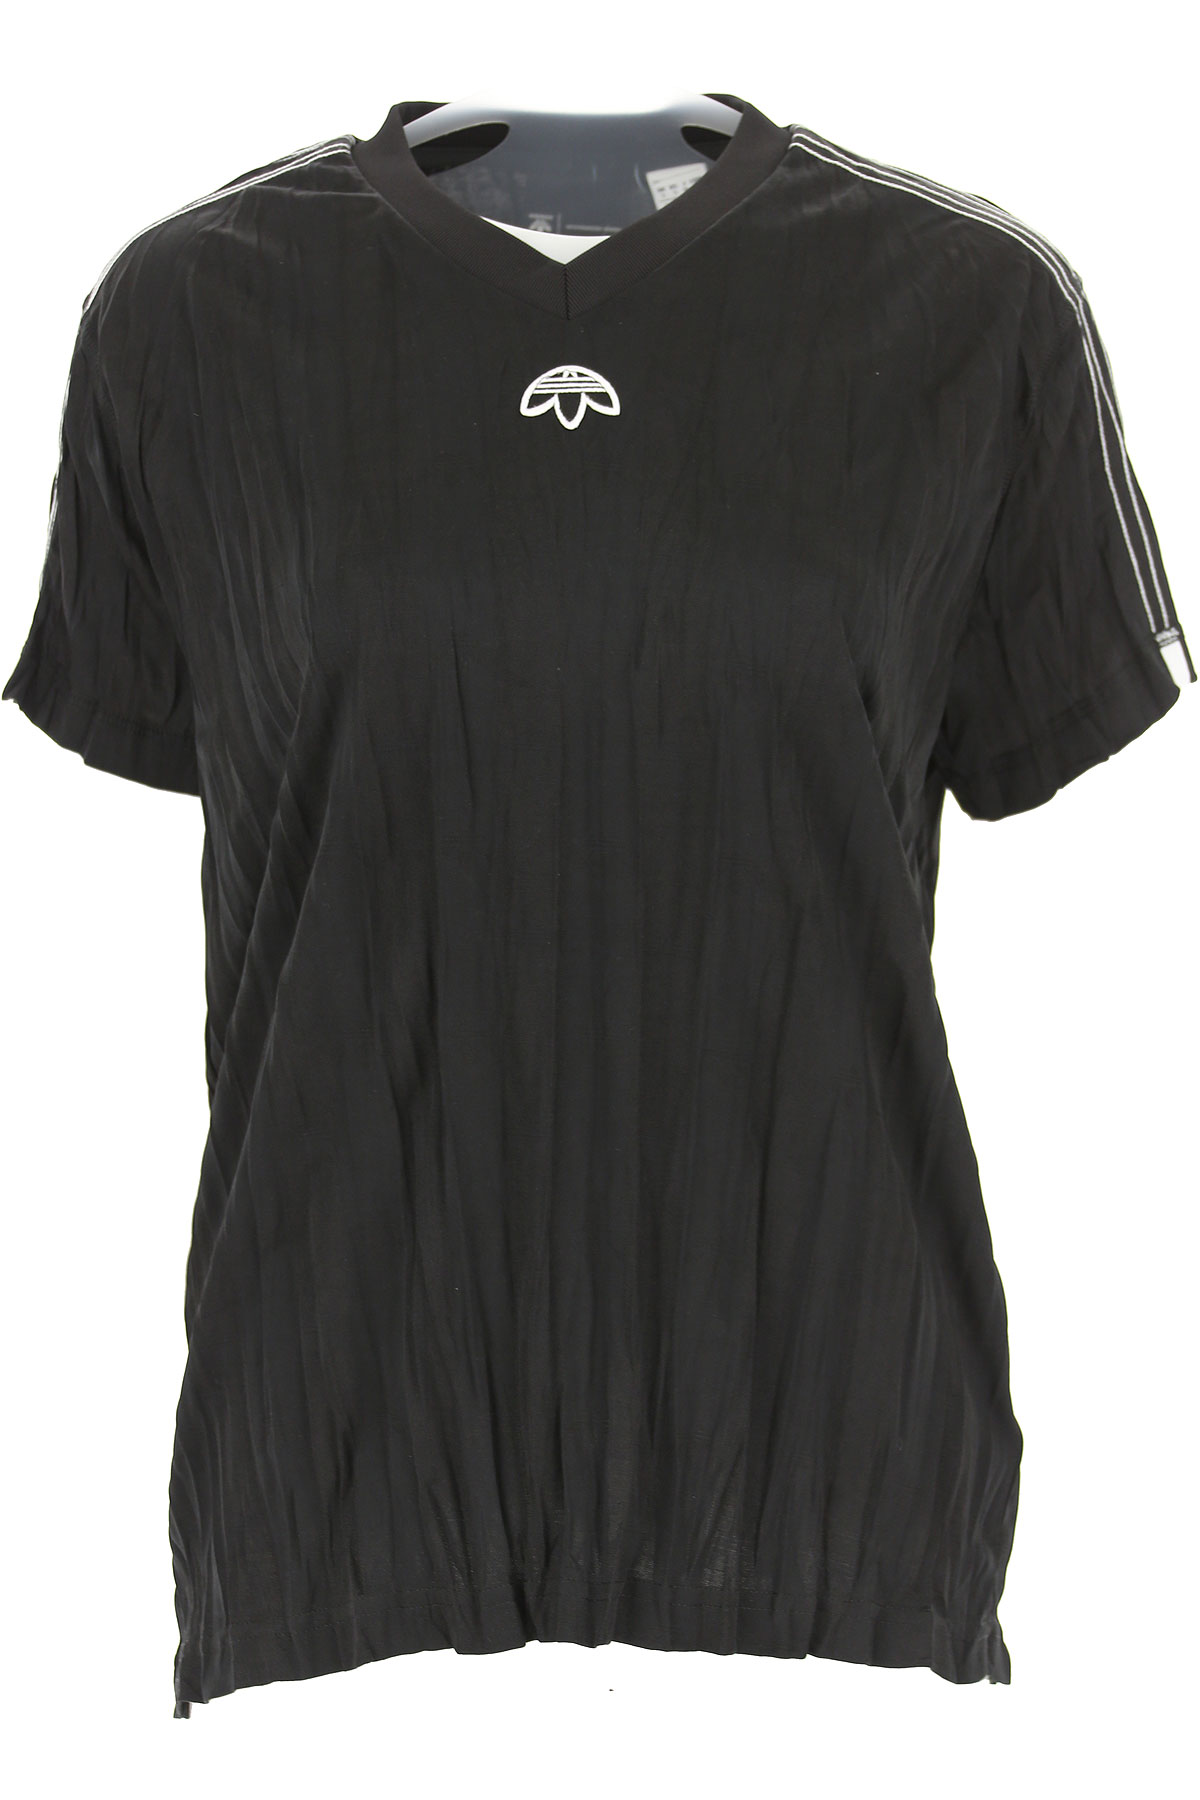 Image of Adidas T-Shirt for Women, By Alexander Wang, Black, polyestere, 2017, 10 2 4 6 8